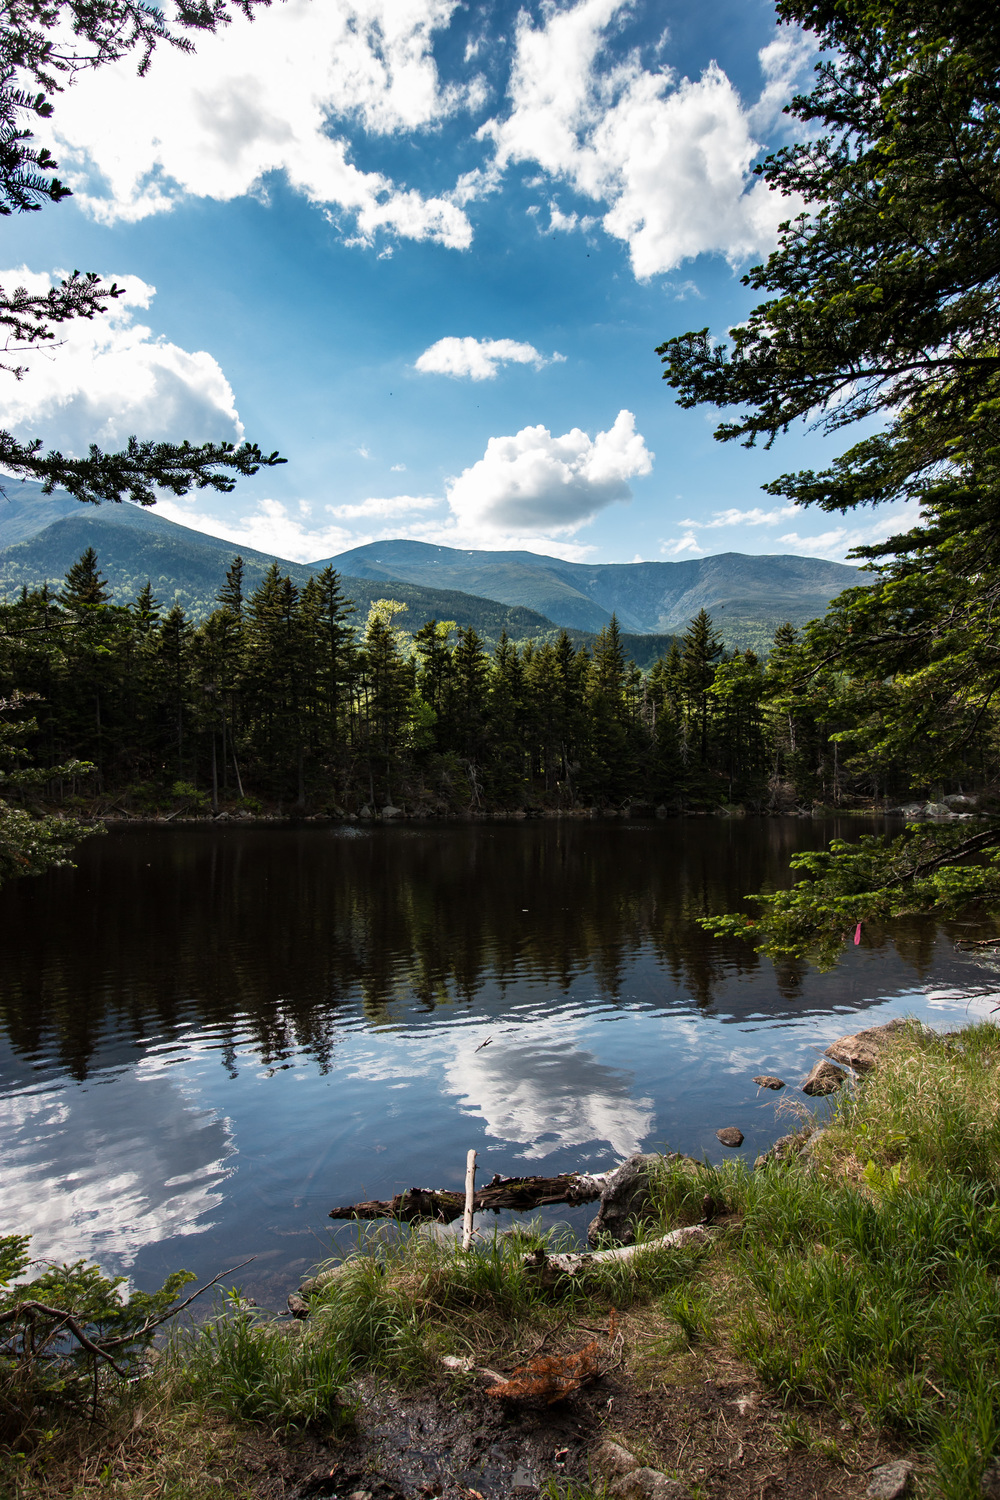 View of Mount Washington over Lost Pond.